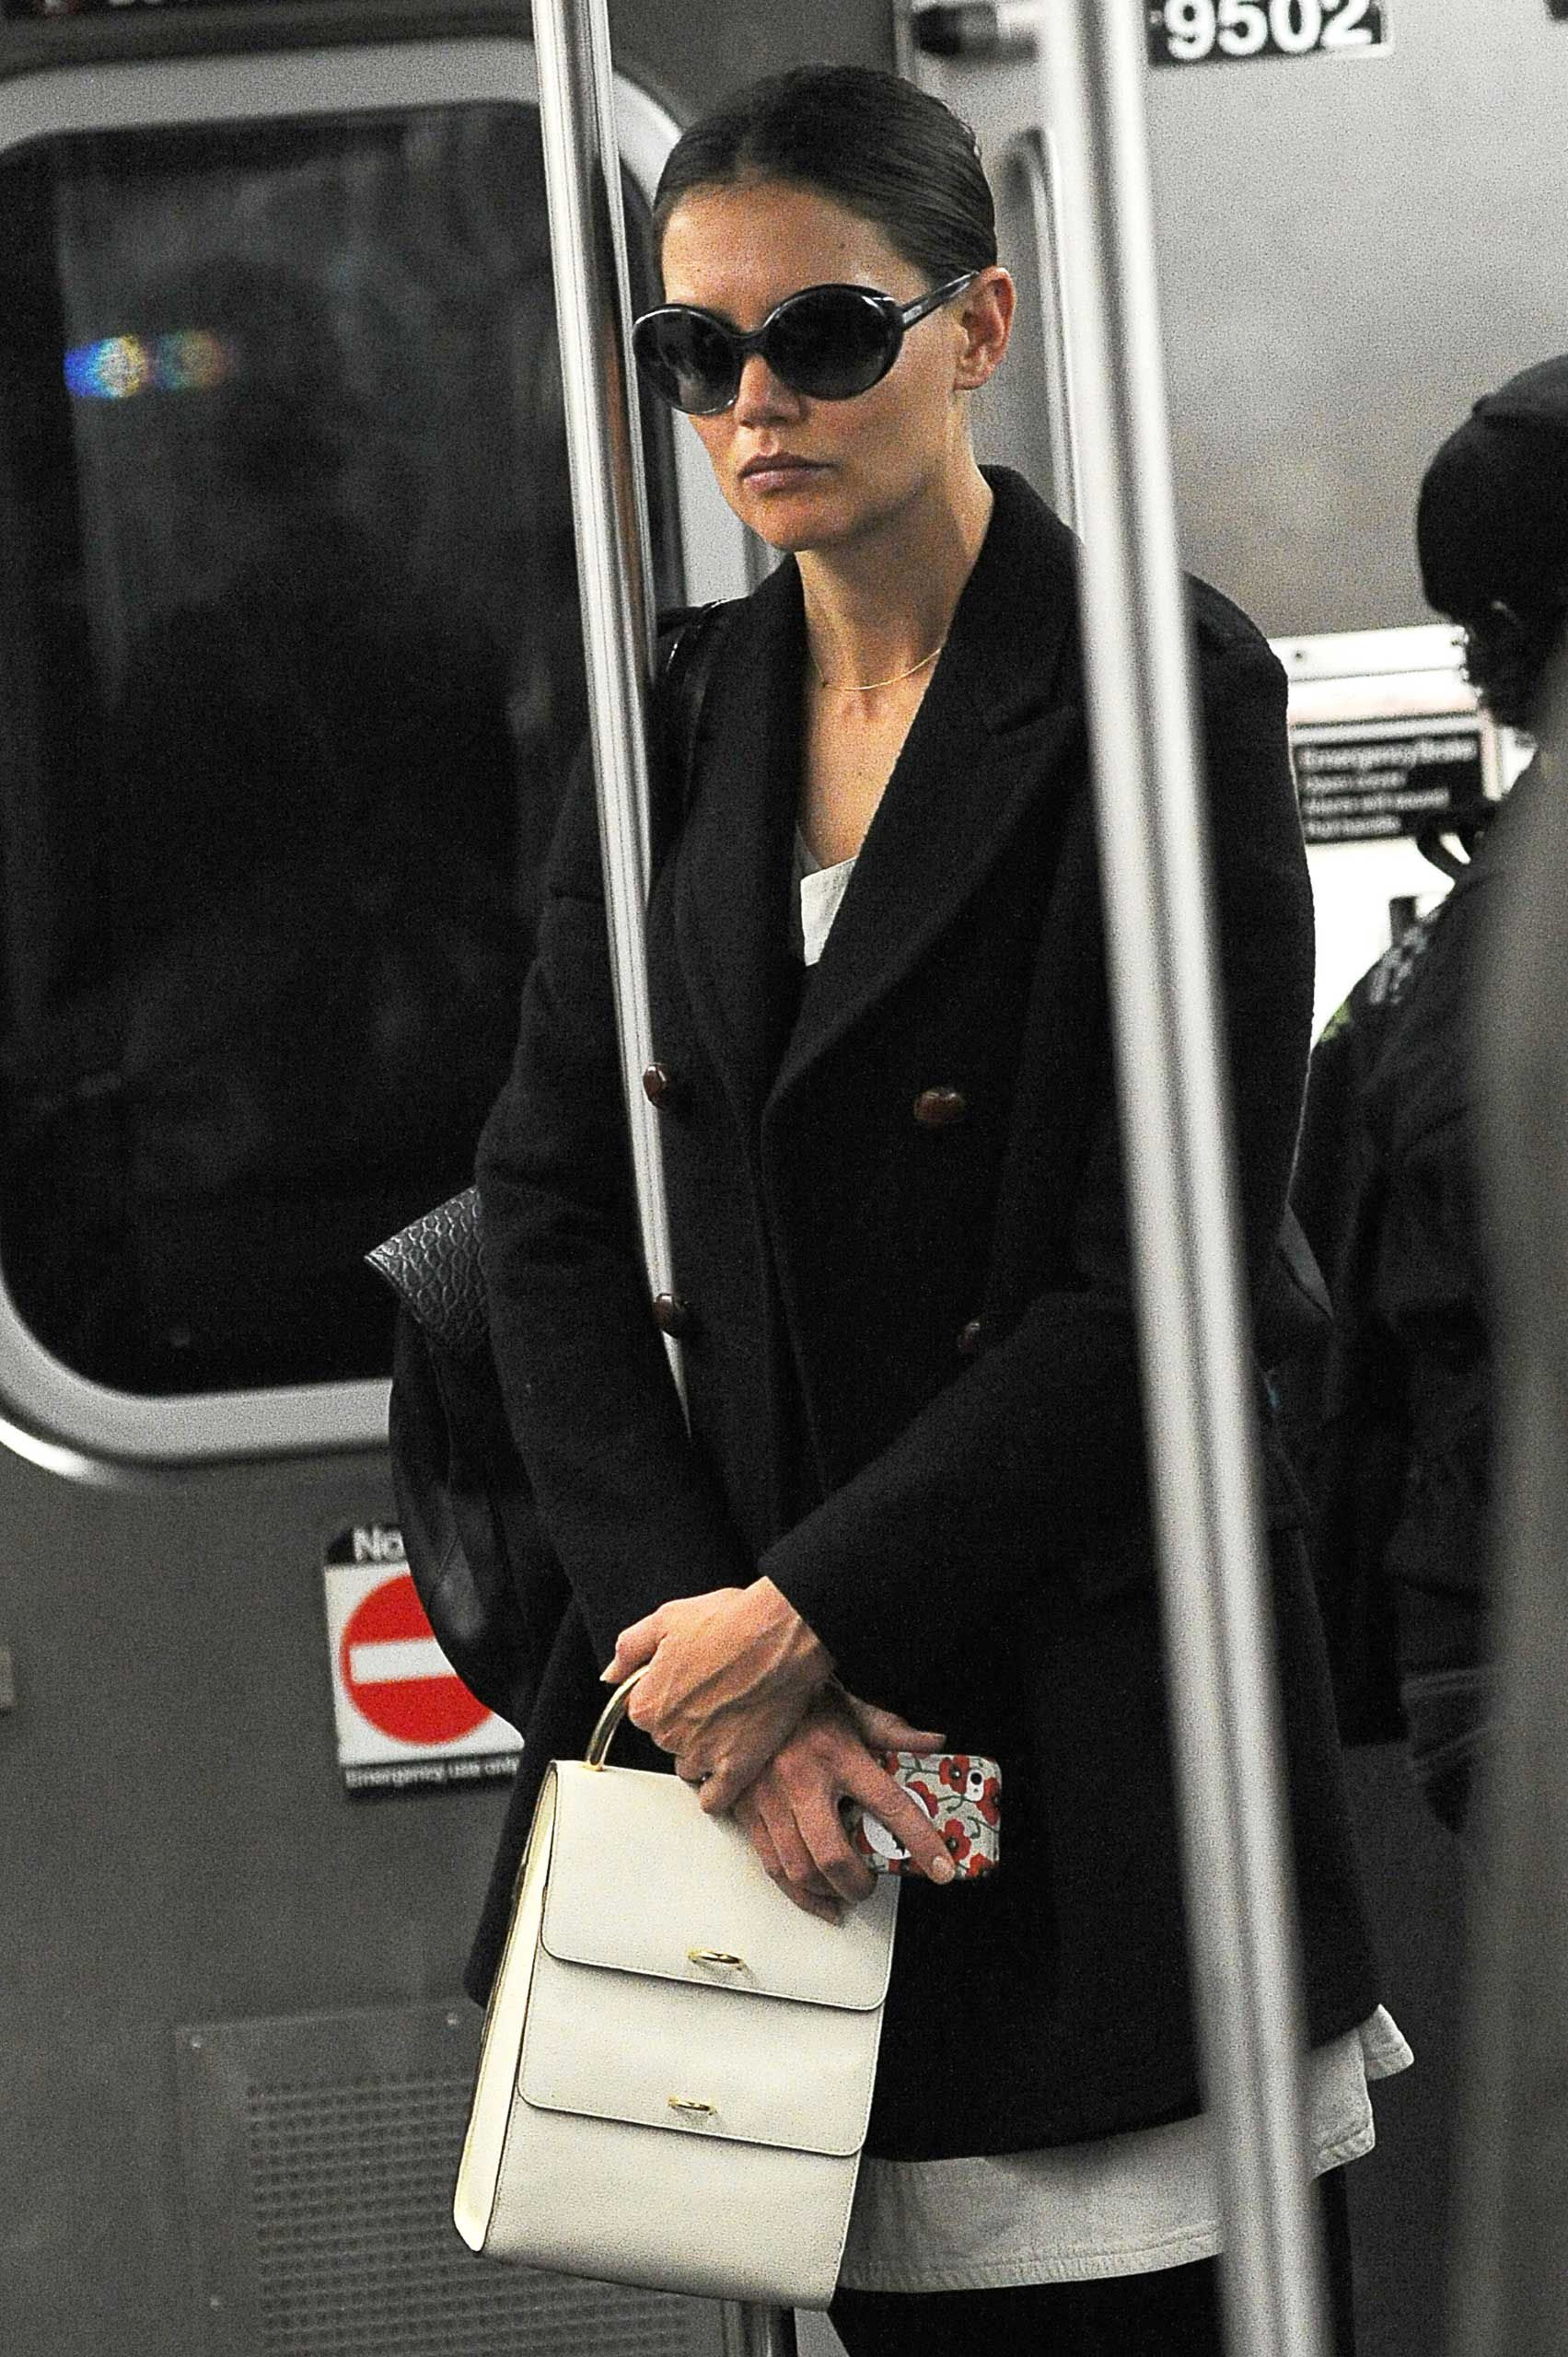 Katie Holmes rides the subway in New York City on Oct. 15, 2012.